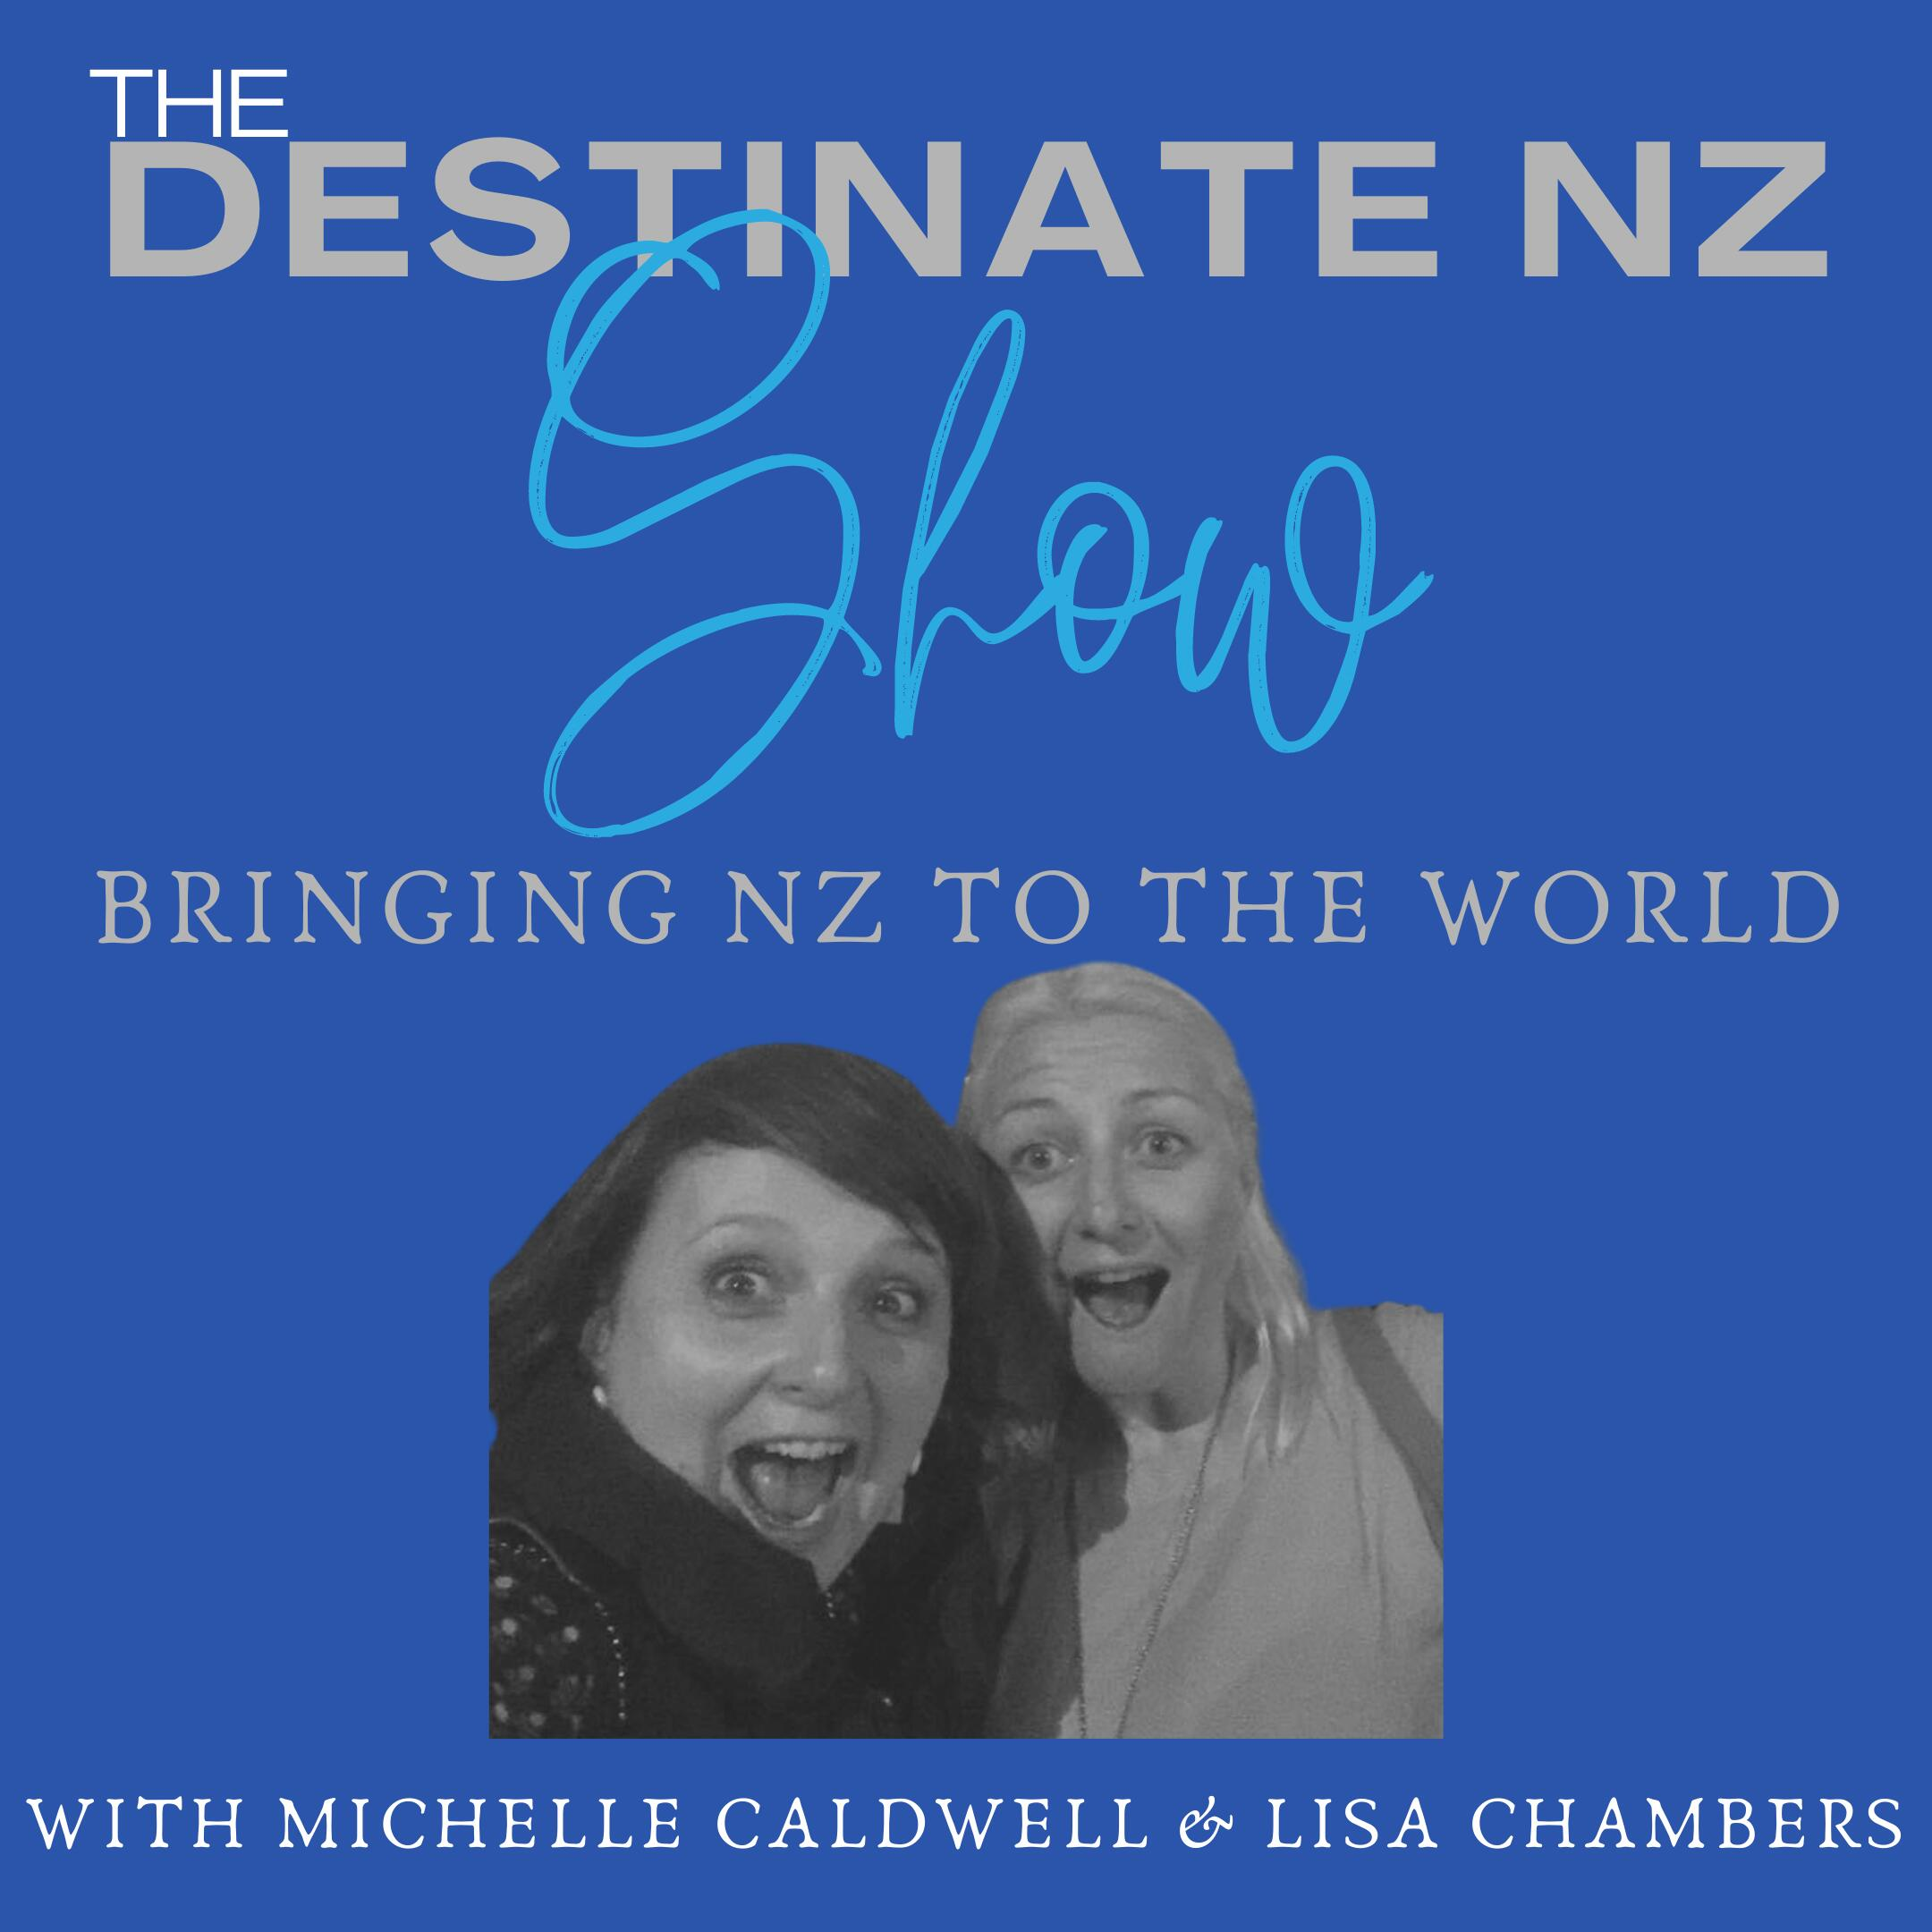 Destinate NZ - Bringing NZ to the World